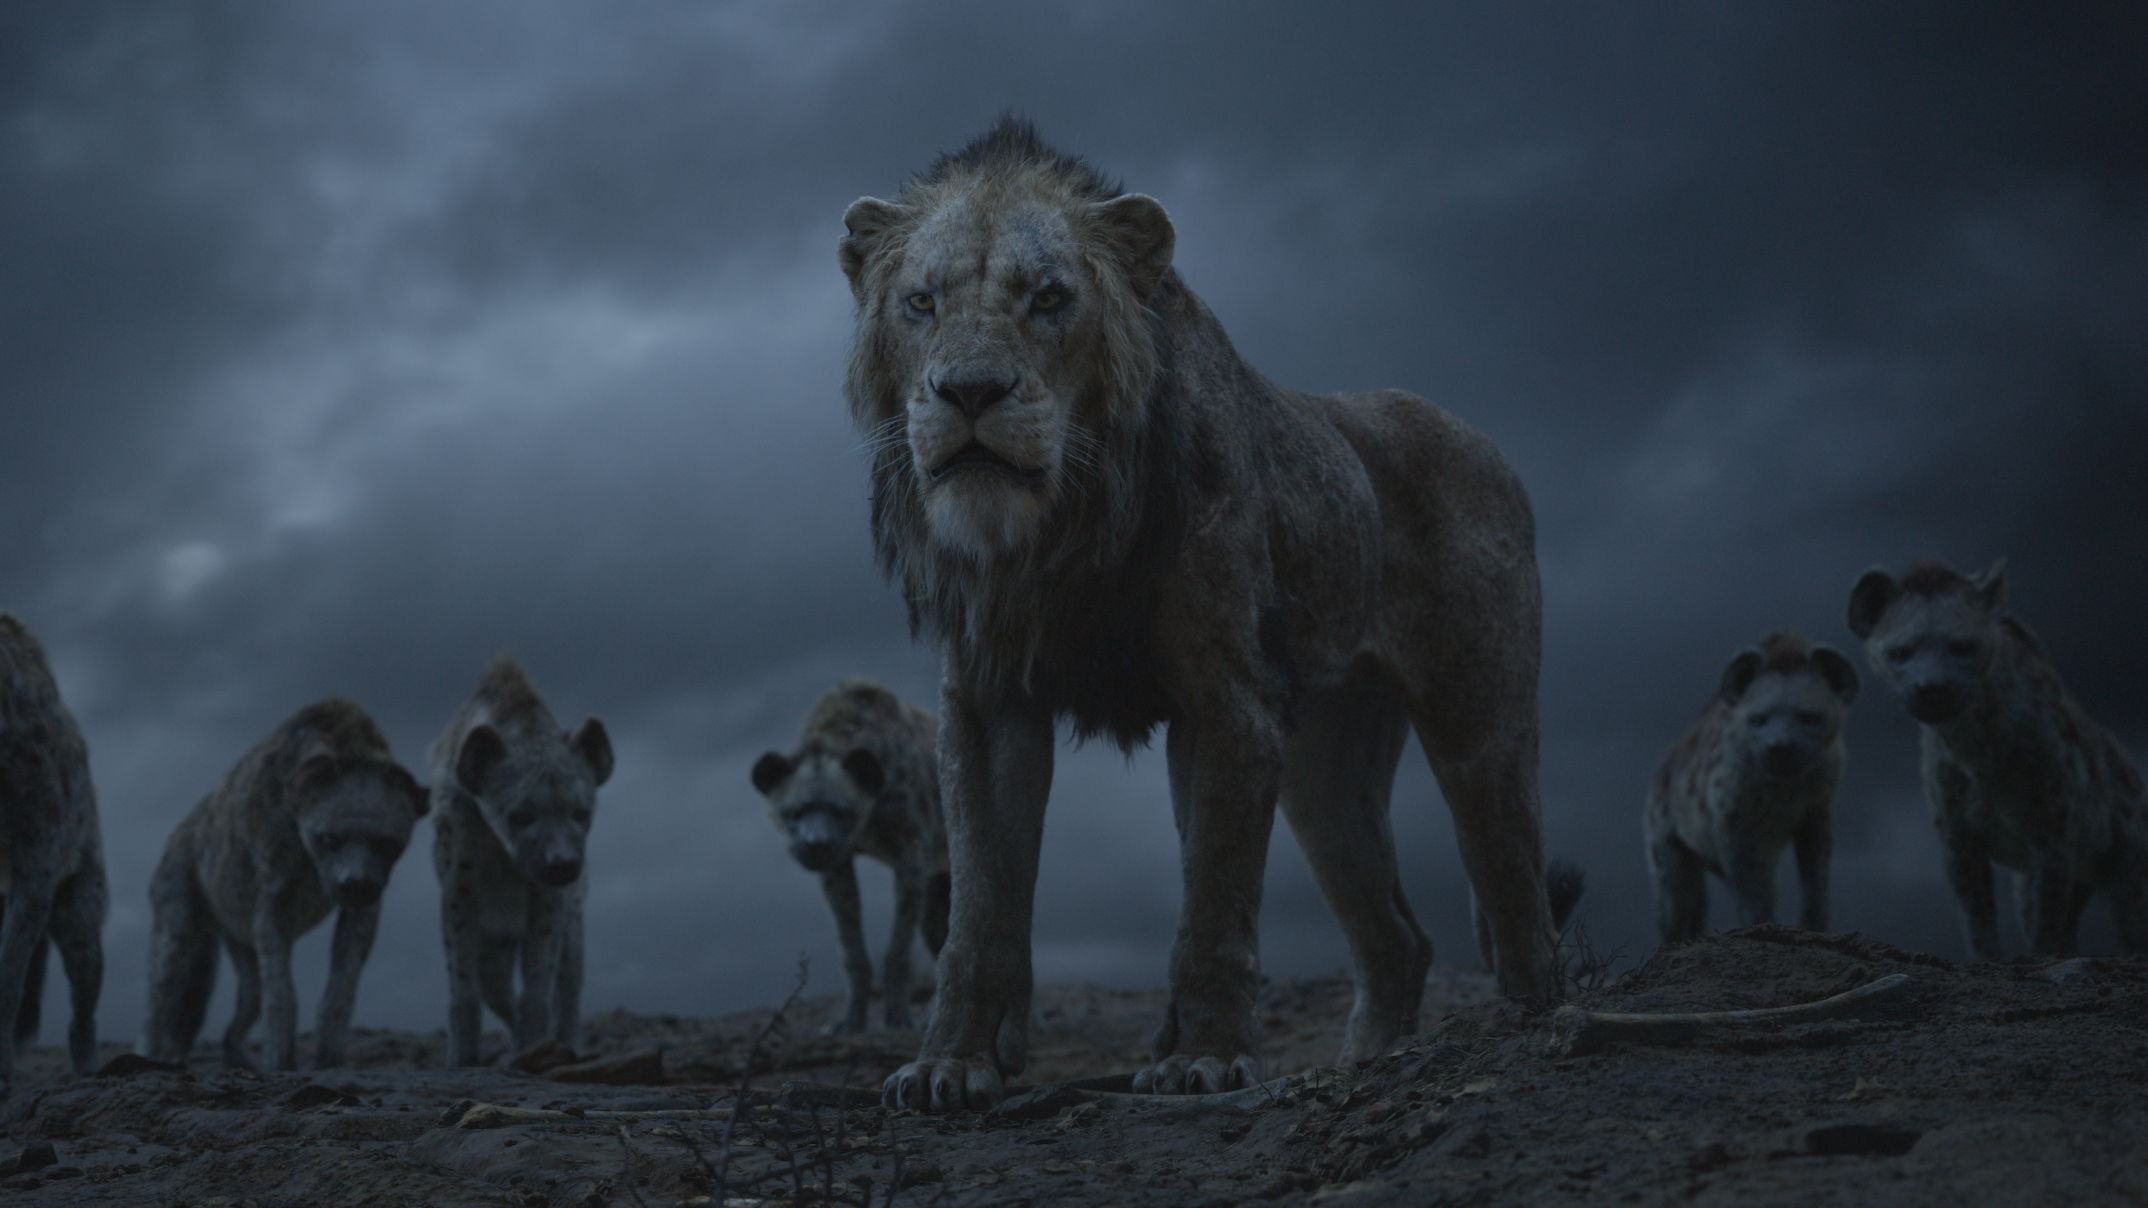 The Lion King Had The Perfect Villain Song This Time Be Prepared For Less Npr